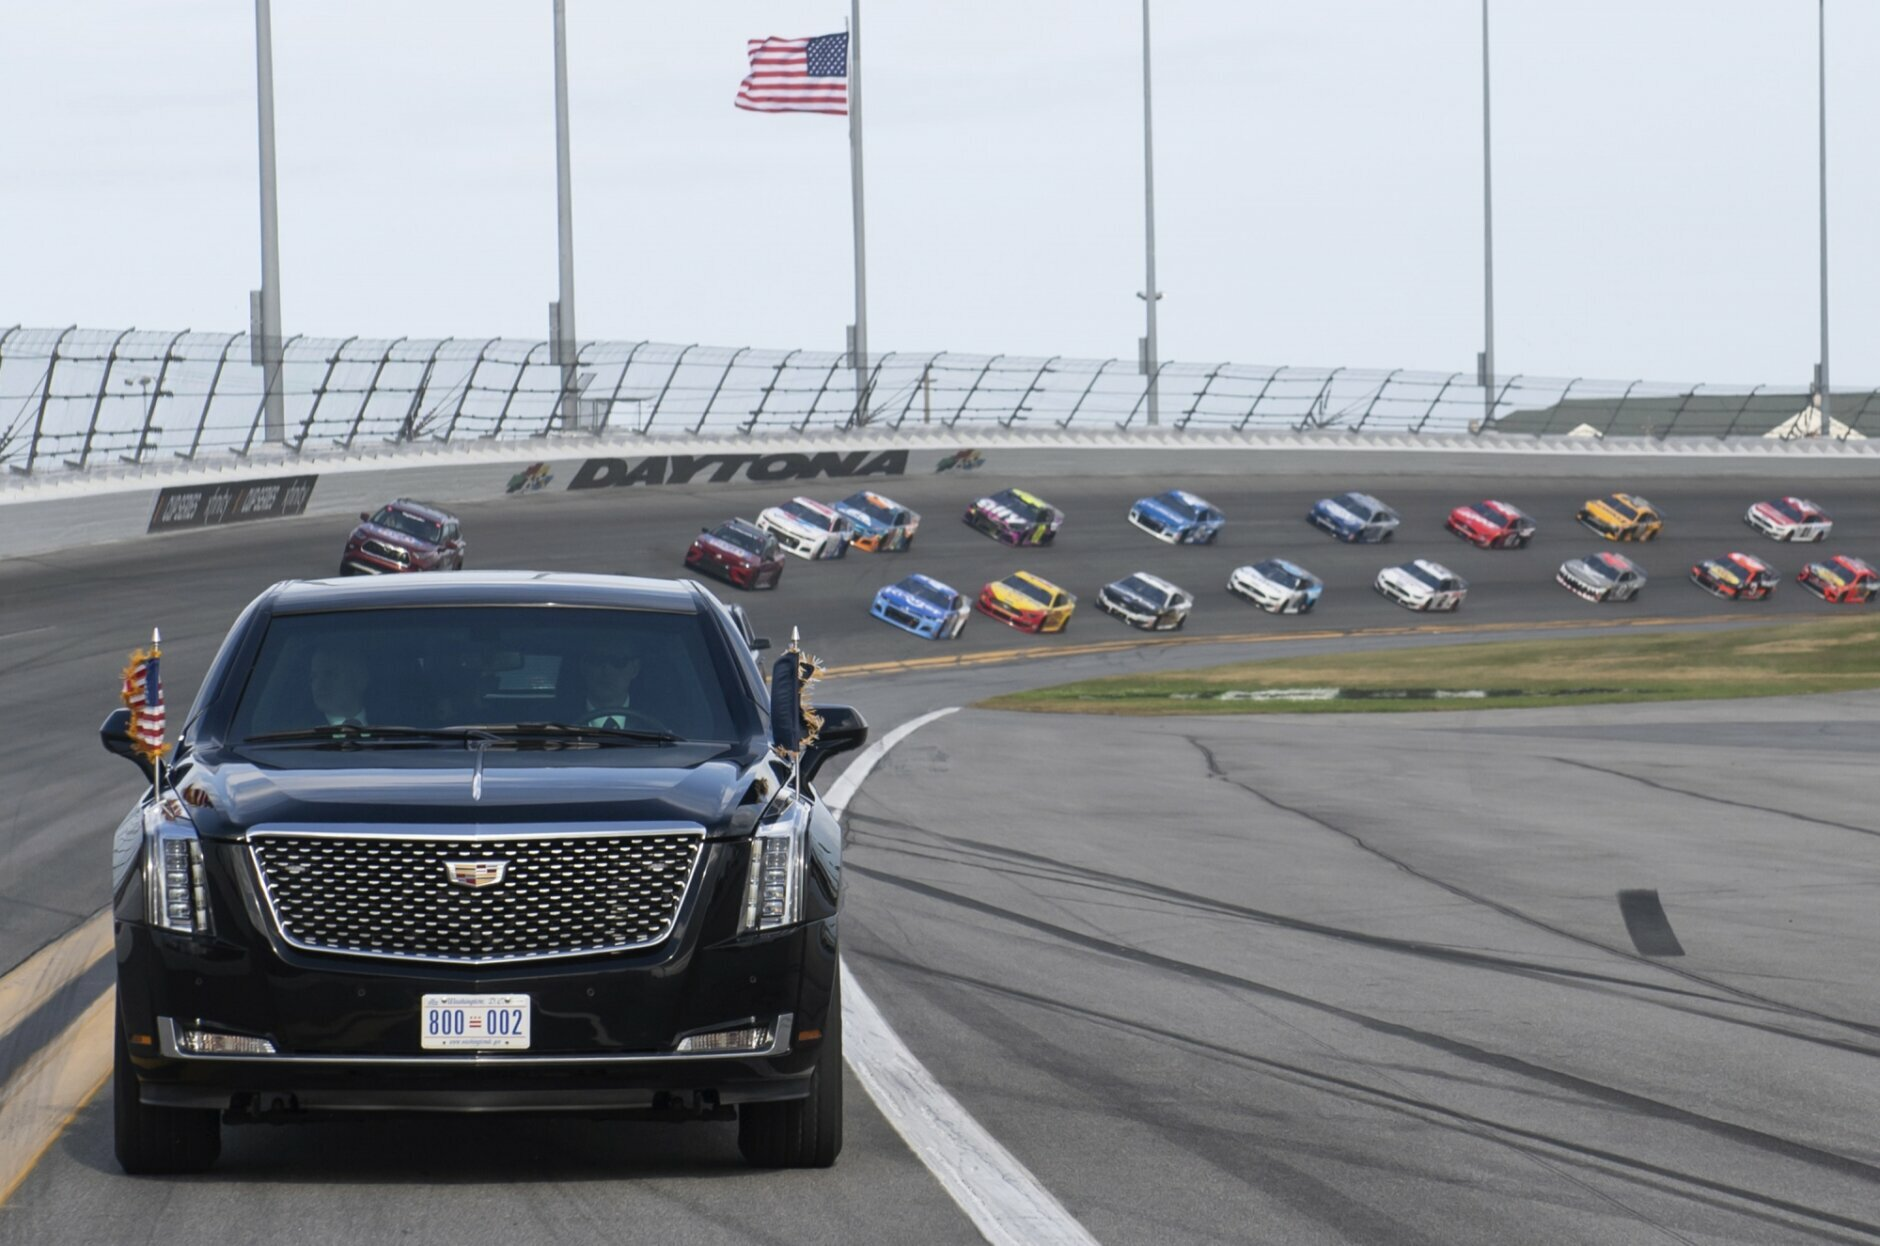 President Donald Trump and first lady Melania Trump ride in the presidential limousine as they take a pace lap ahead of the start of the NASCAR Daytona 500 auto race at Daytona International Speedway in Daytona Beach, Fla., Sunday, Feb. 16, 2020. (Saul Loeb/Pool Photo via AP)